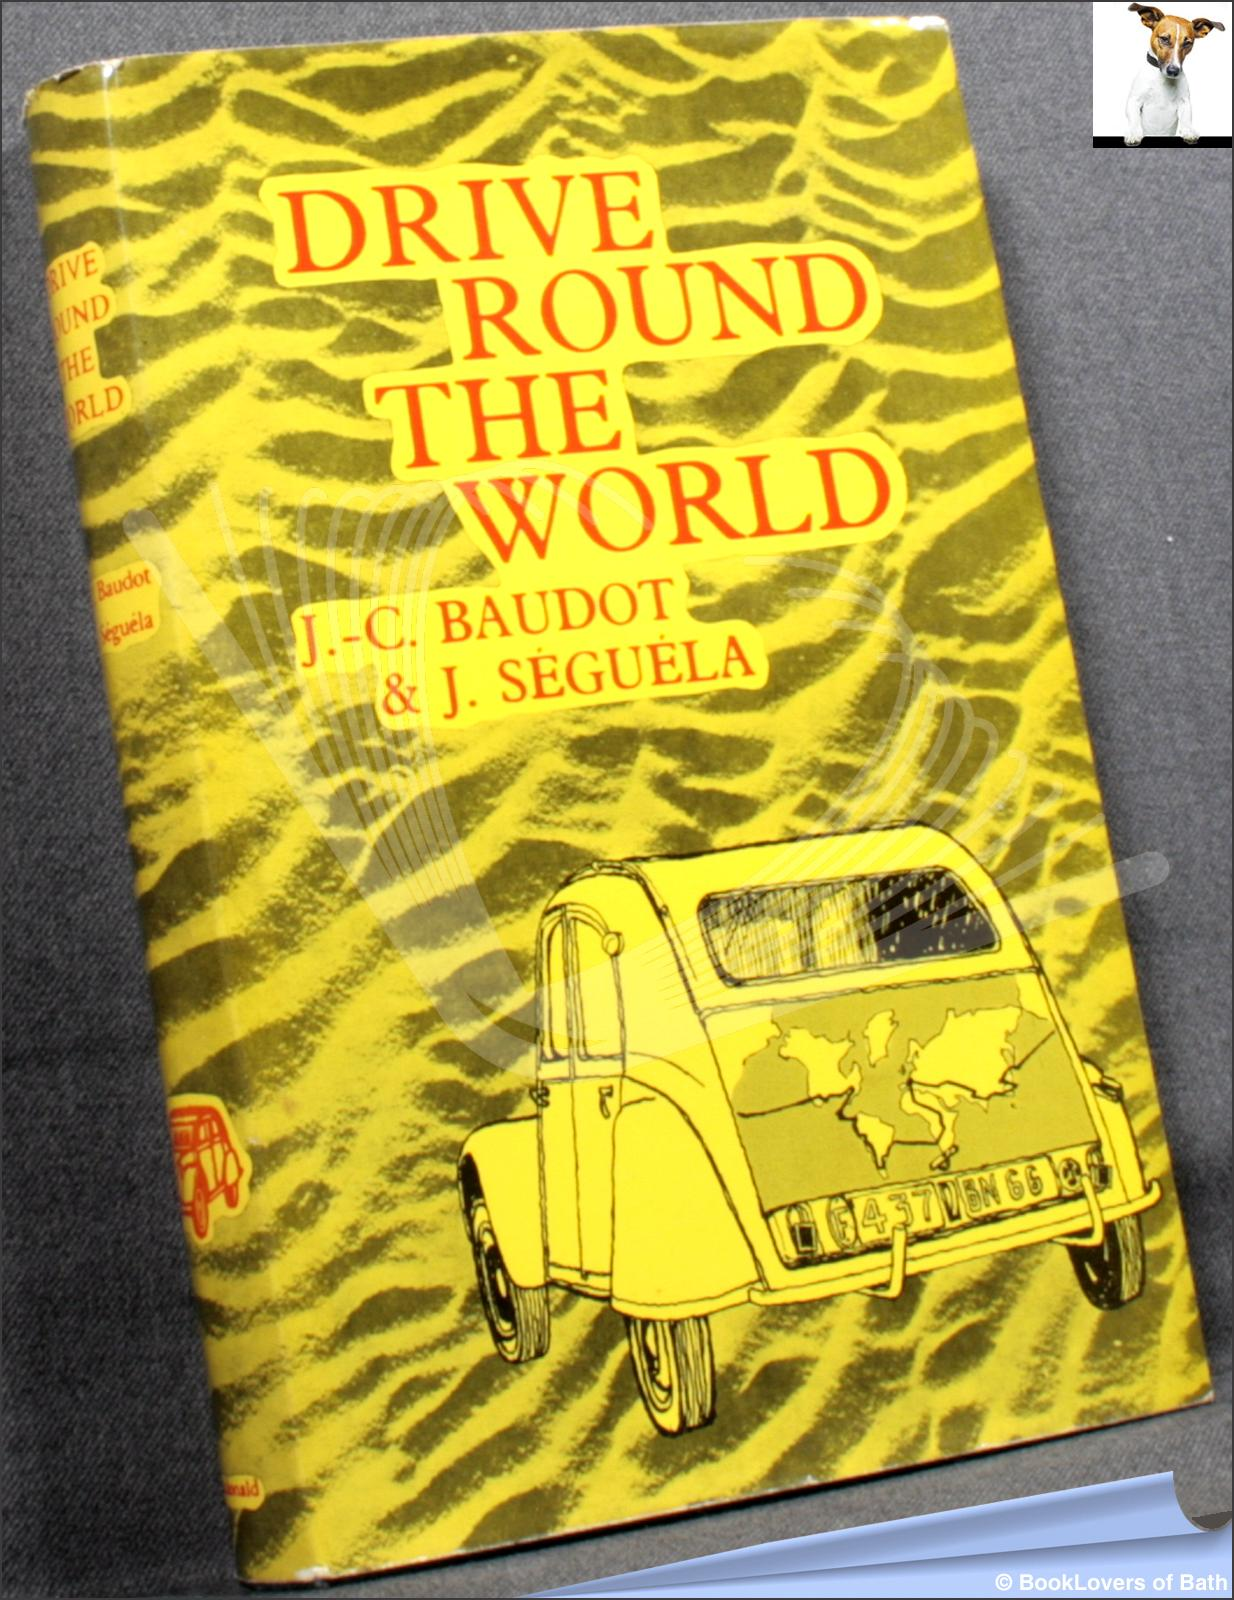 Drive Round the World - Jean-Claude Baudot & Jacques Seguela